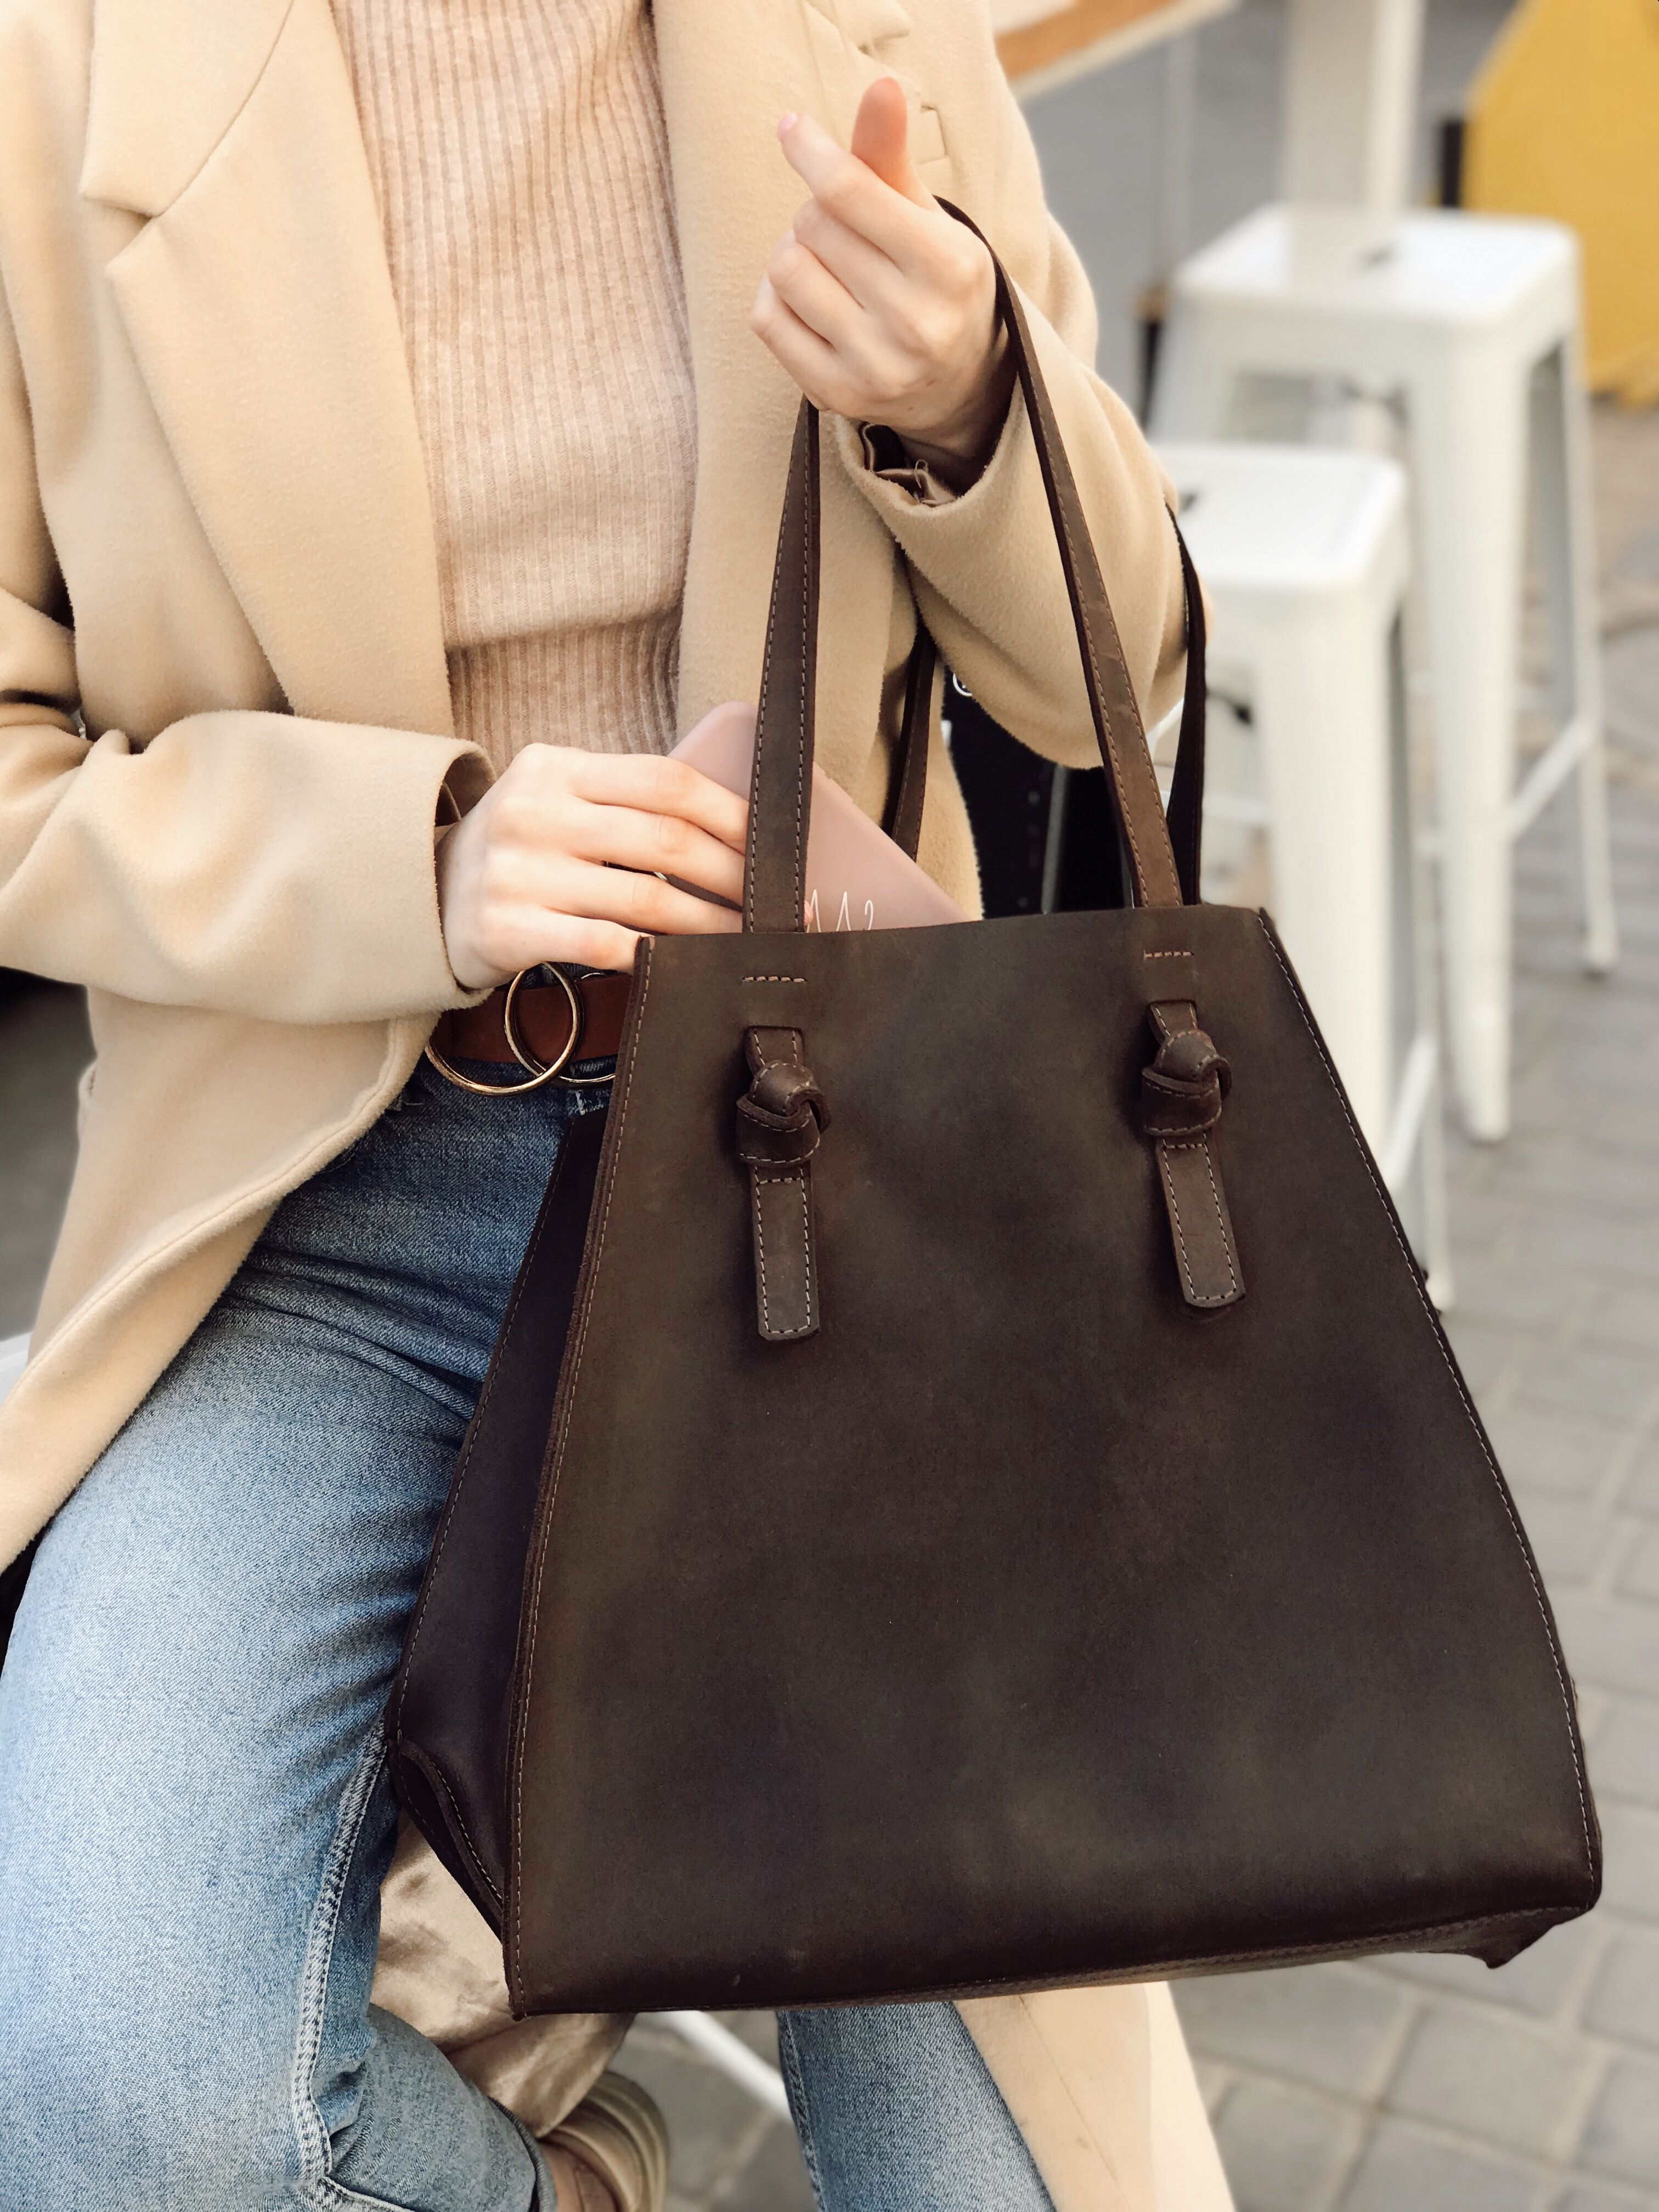 Tote Bag Personnalisable Monogram Tote Bag Large Leather Pull-Up  Tote Bag Tote Bag With Pockets Leather Tote Bag Large Leather Tote